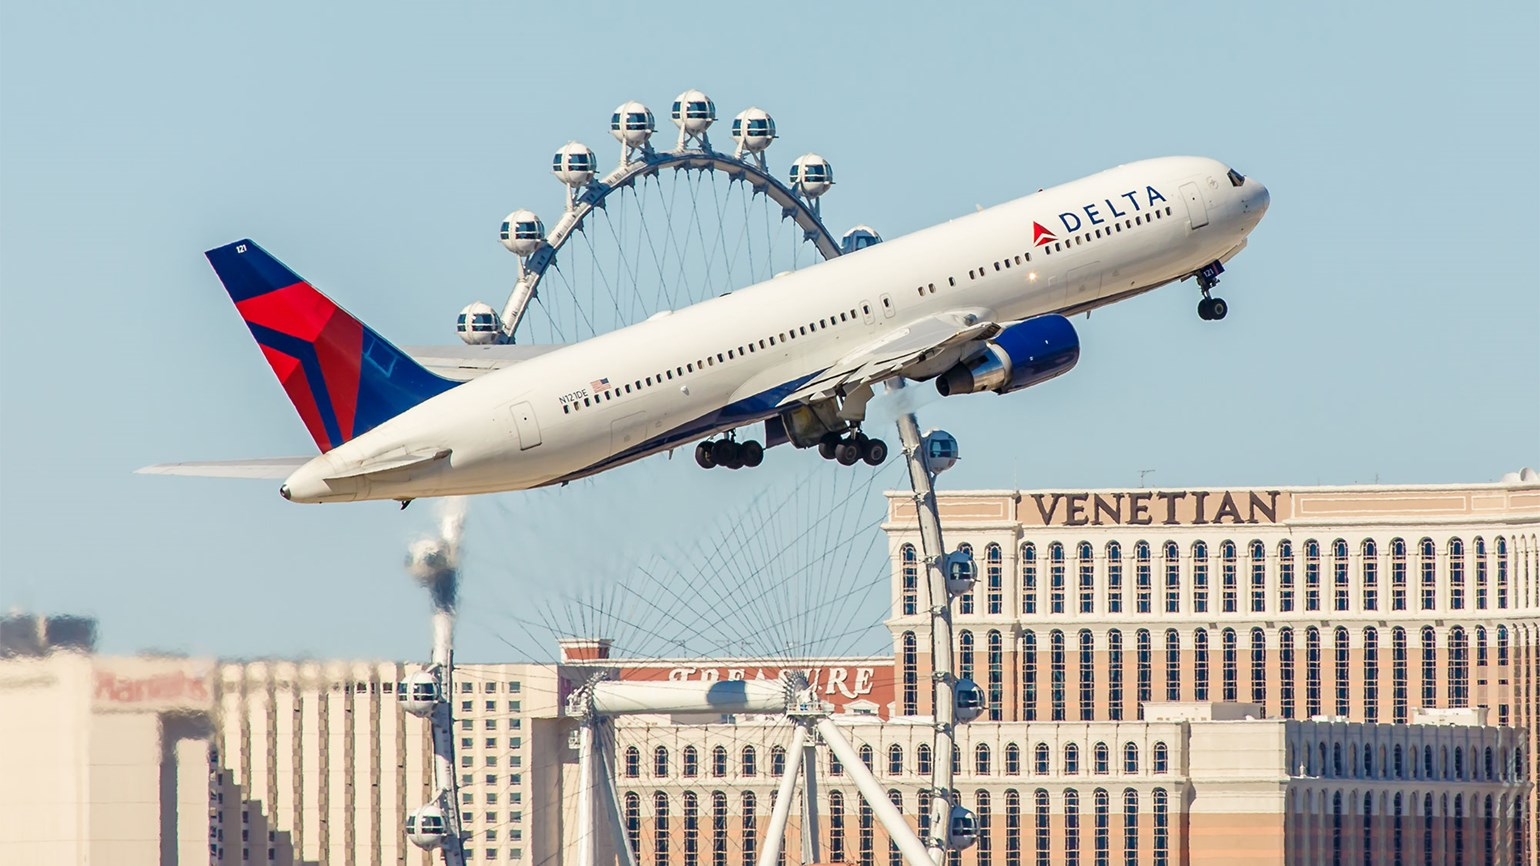 Delta in Vegas [Credit: Chris Parypa Photography/Shutterstock.com]